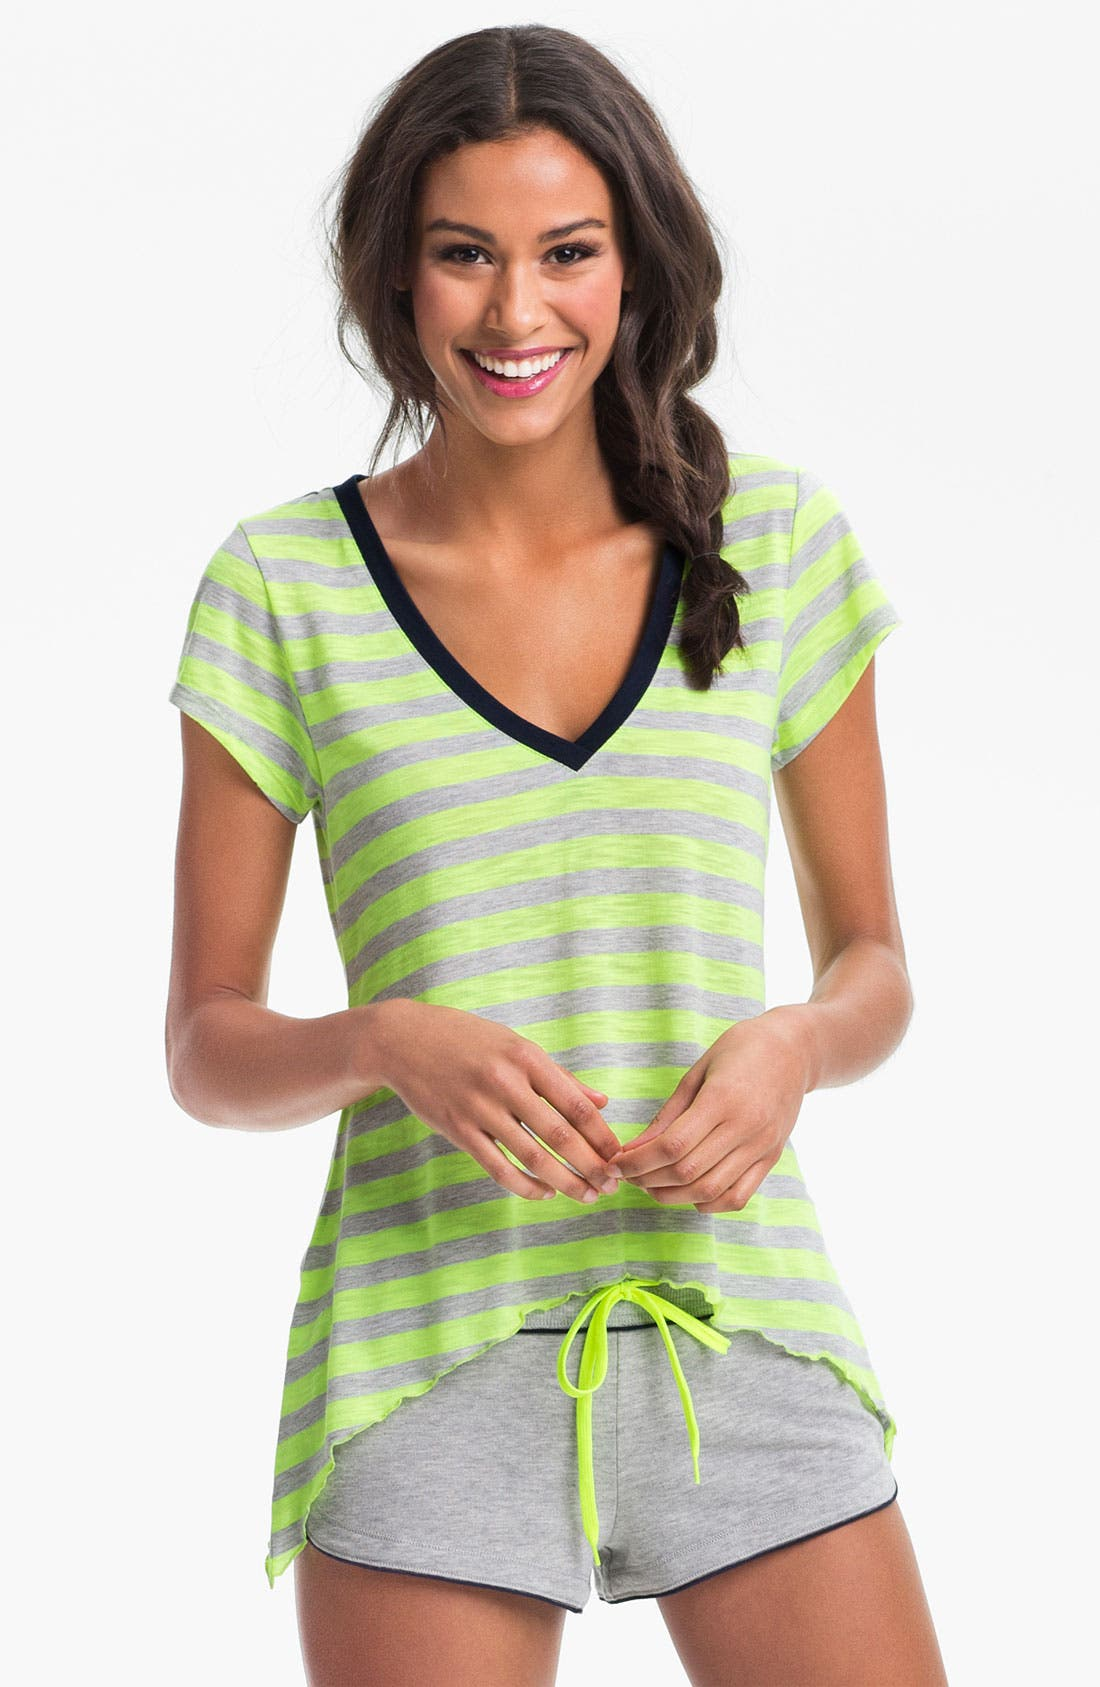 Main Image - Steve Madden 'Earn Your Stripes' Lounge Tee